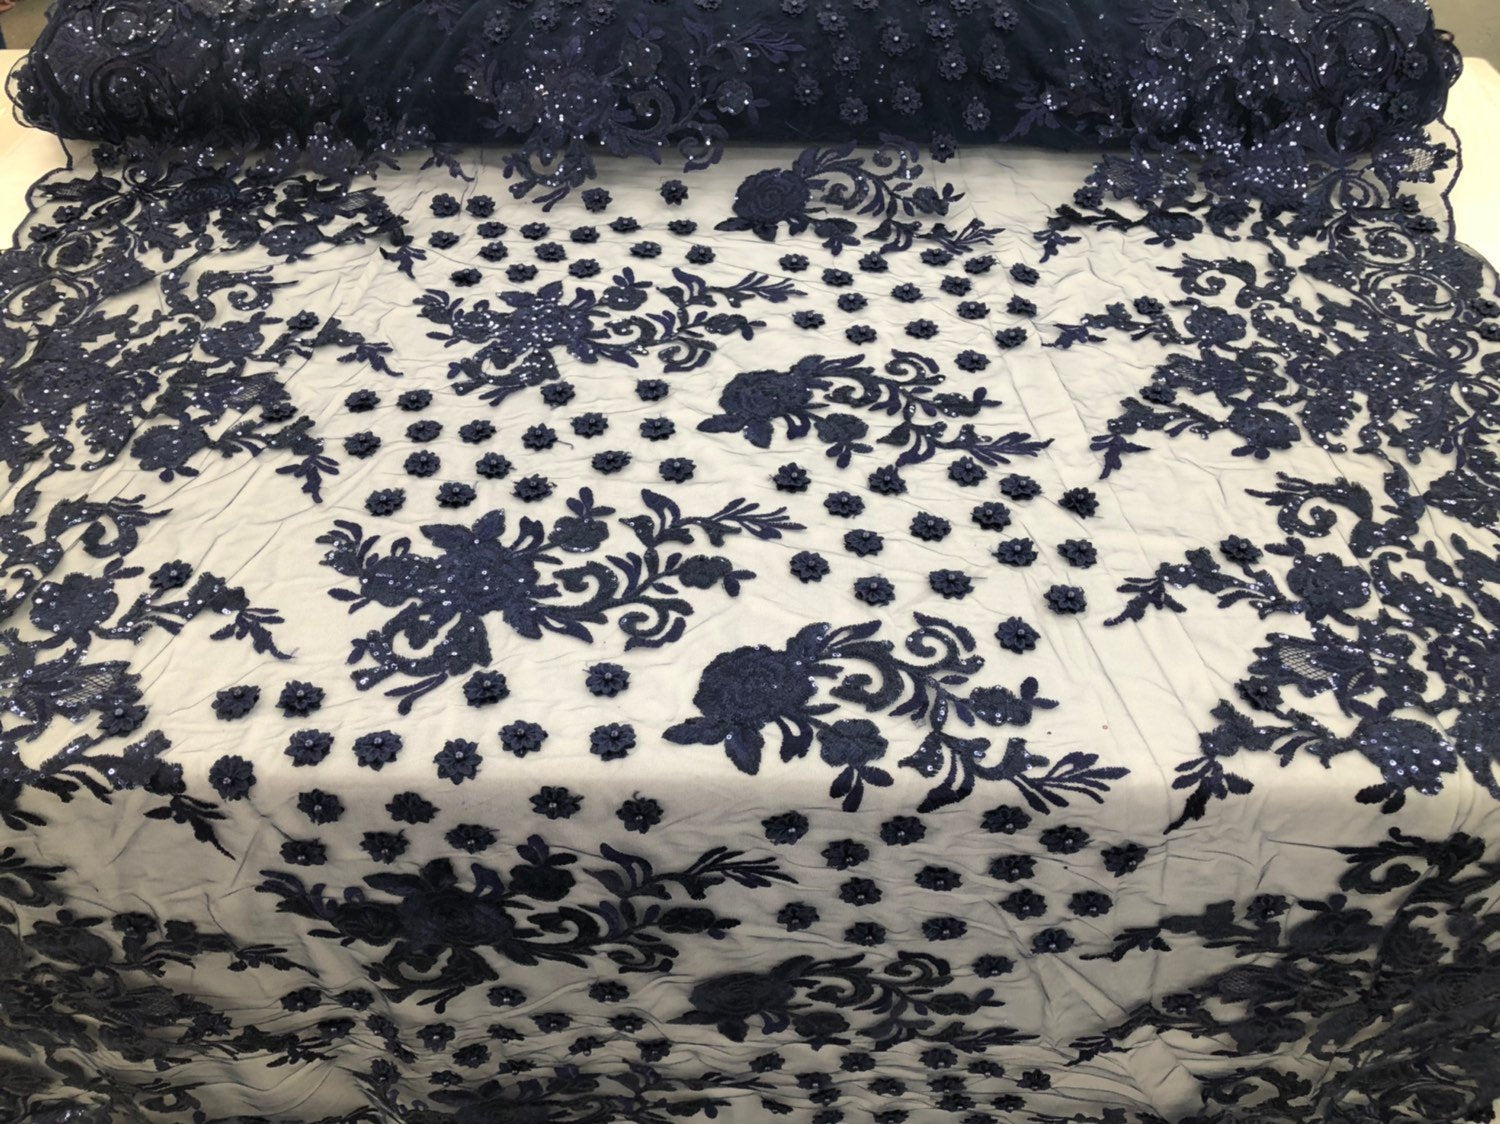 NAVY Lace Fabric - Mini 3D Flower Embroidered On A Mesh Sequins And Beaded Fabric Floral Wedding Bridal Veil Prom-Gown By The Yard